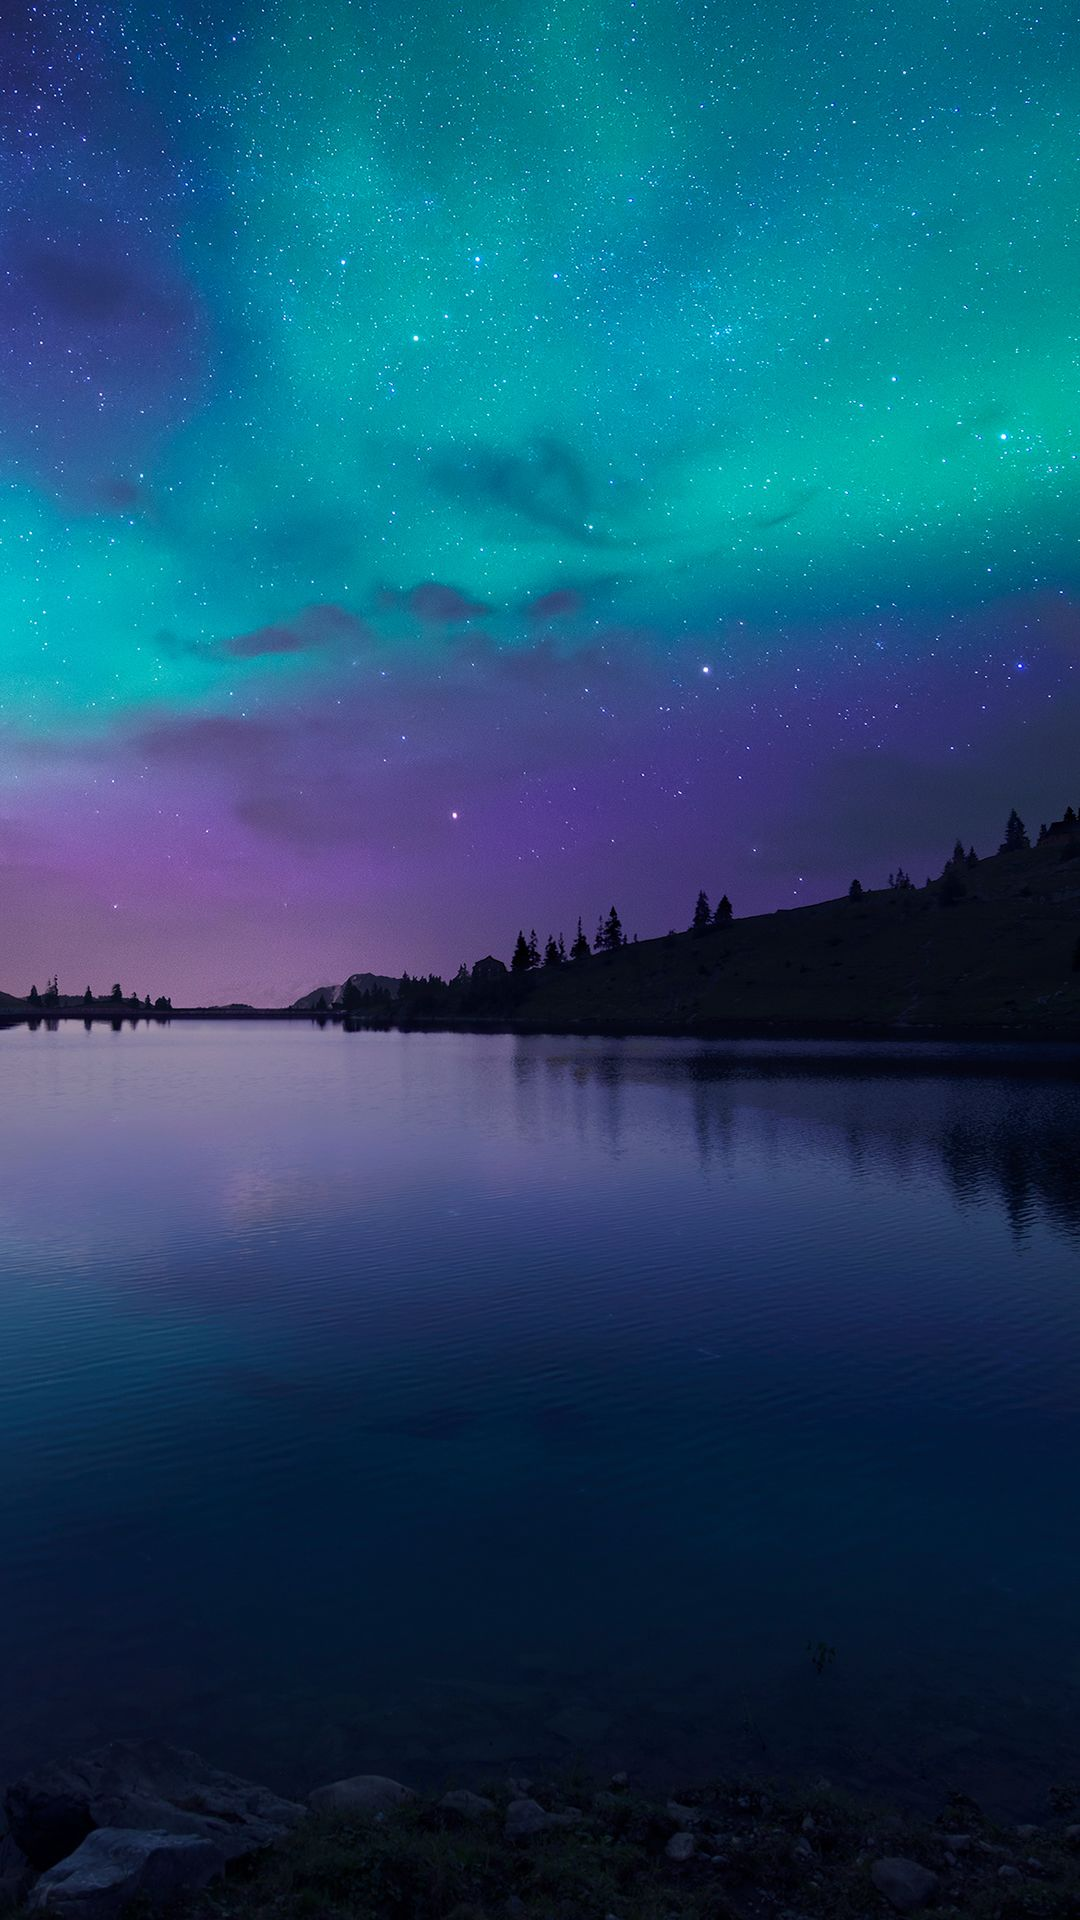 Night Fall At Lake Aurora Iphone 6 Plus Wallpaper Landscape Wallpaper Iphone 6s Wallpaper Iphone 6 Wallpaper Backgrounds